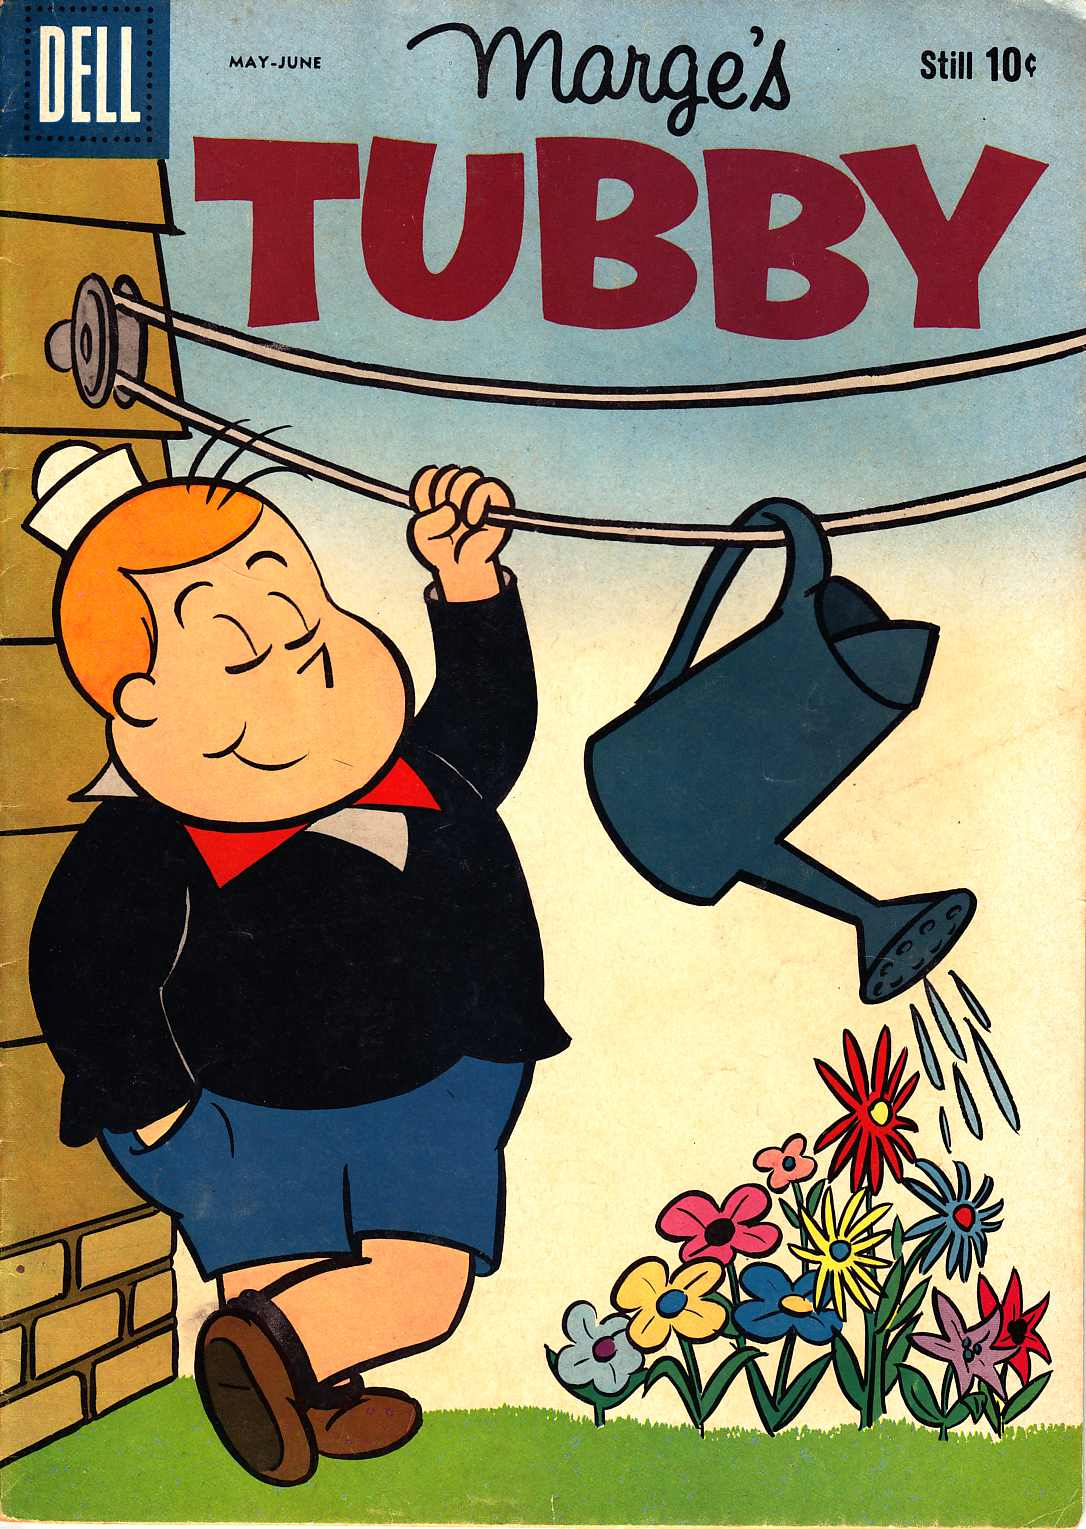 Marge's Tubby #34 [Dell Comic] LARGE